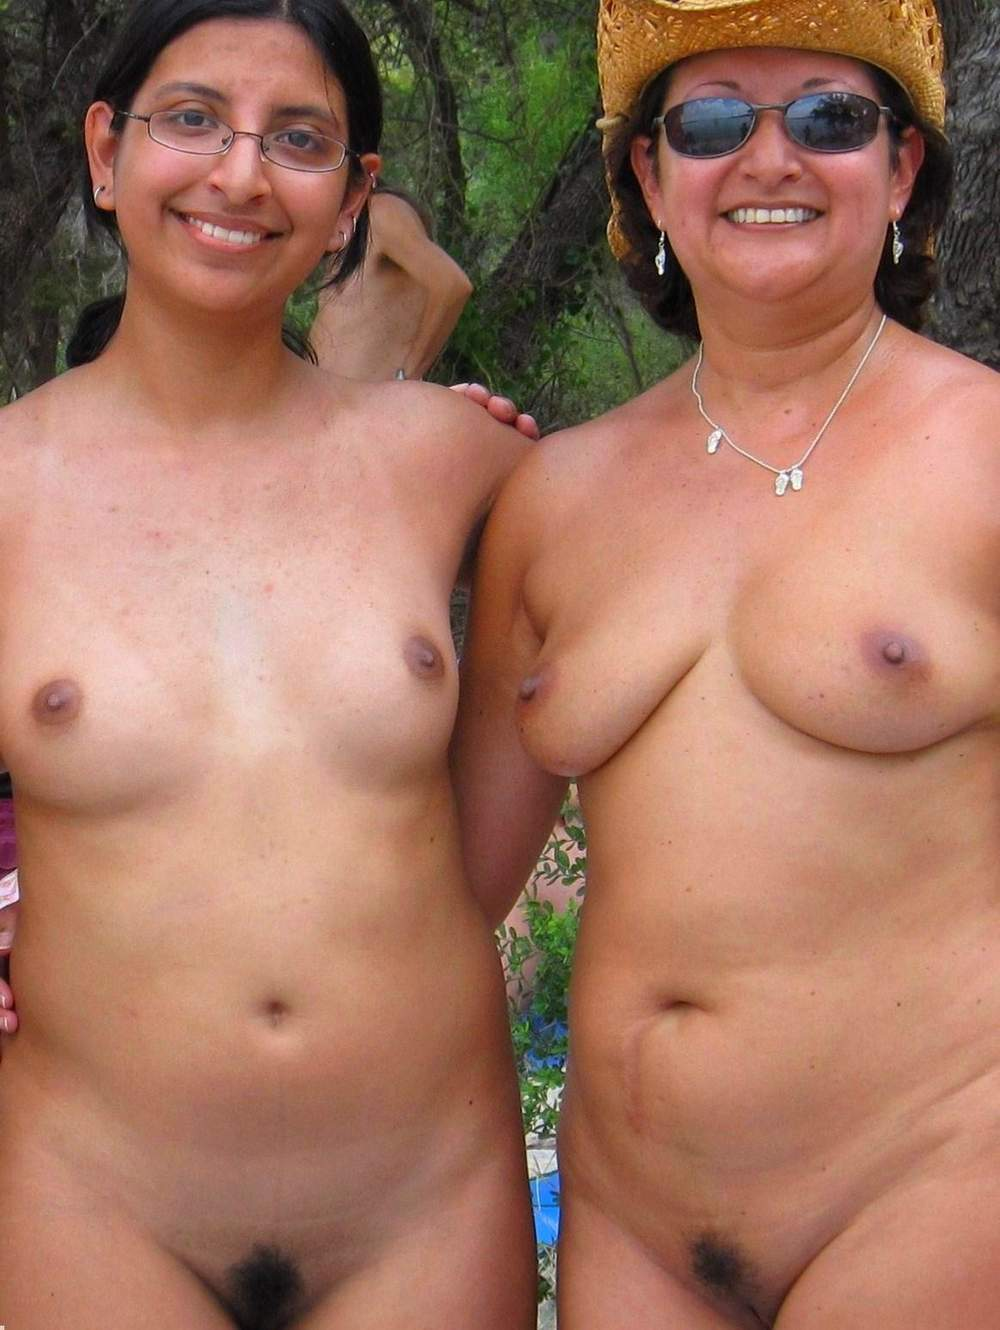 nude indian mother daughter jpg 1500x1000